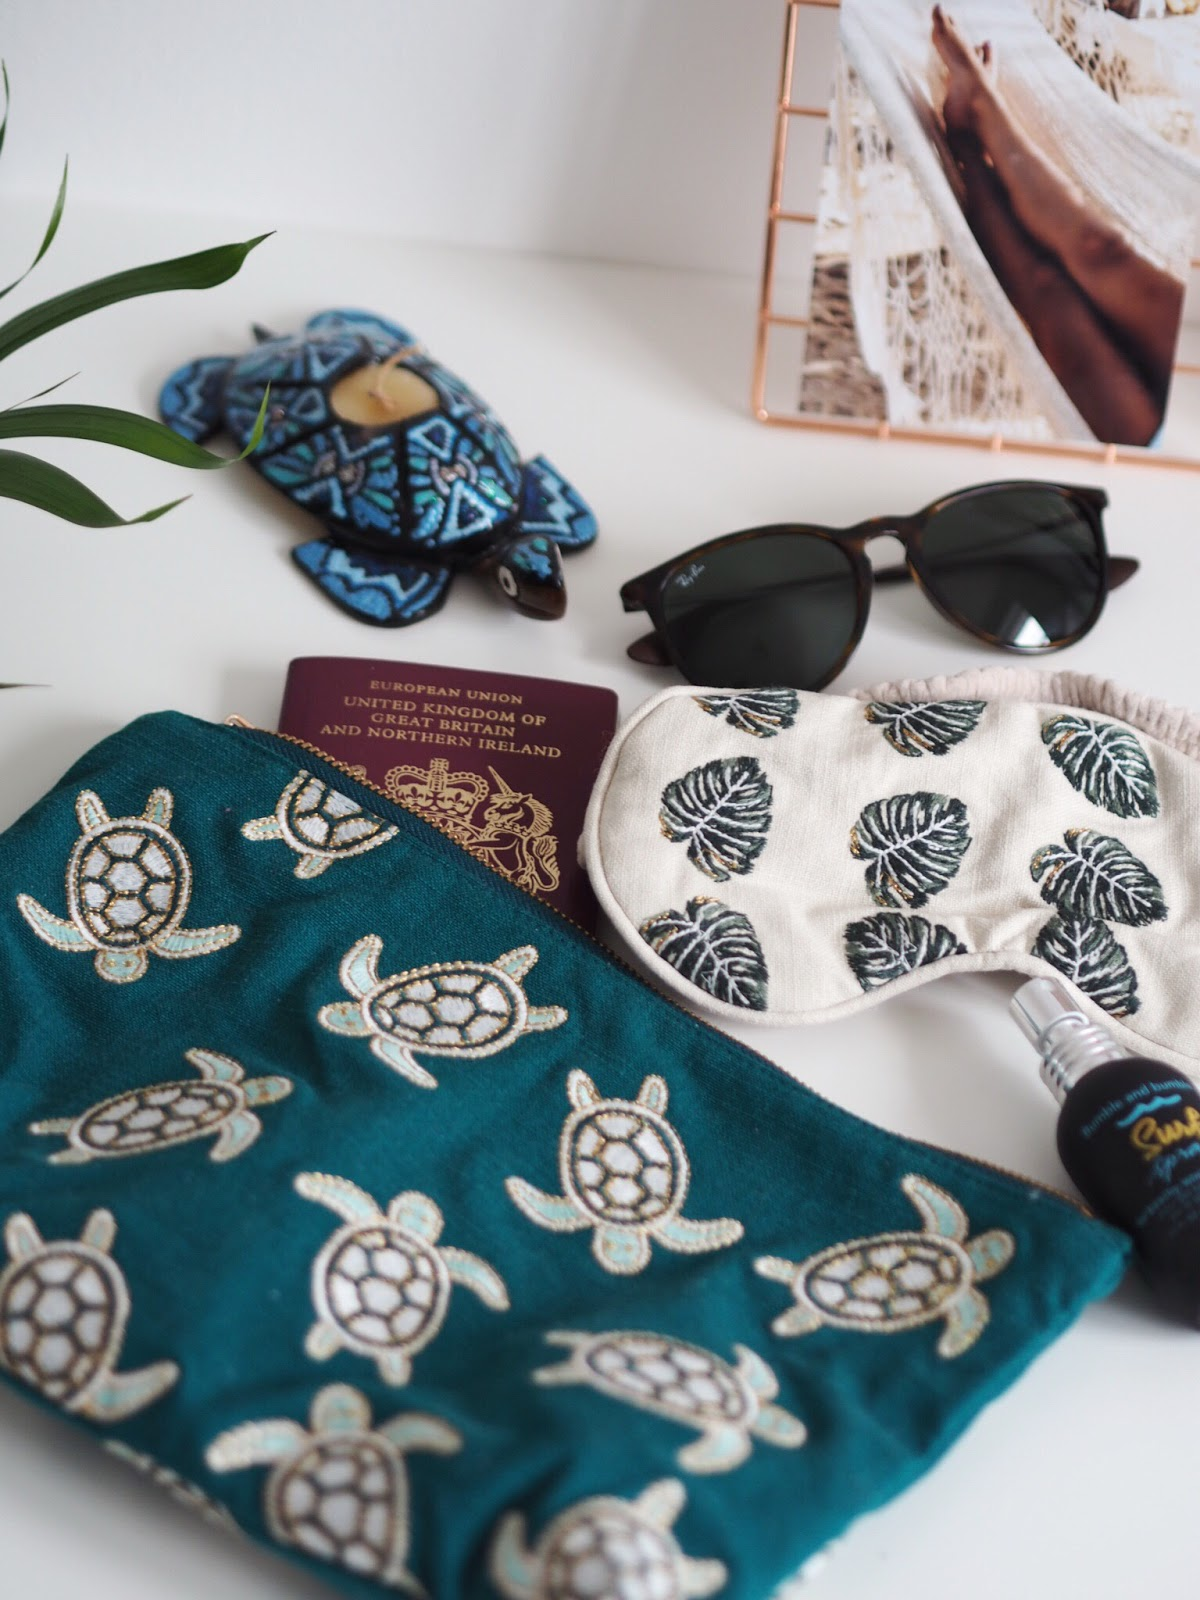 Elizabeth Scarlett Turtle Pouch, Elizabeth Scarlett Jungle Travel Eye Mask, Ray Ban Sunglasses, Passport, Bumble Bumble Salt Spray Holiday Essentials Flat Lay